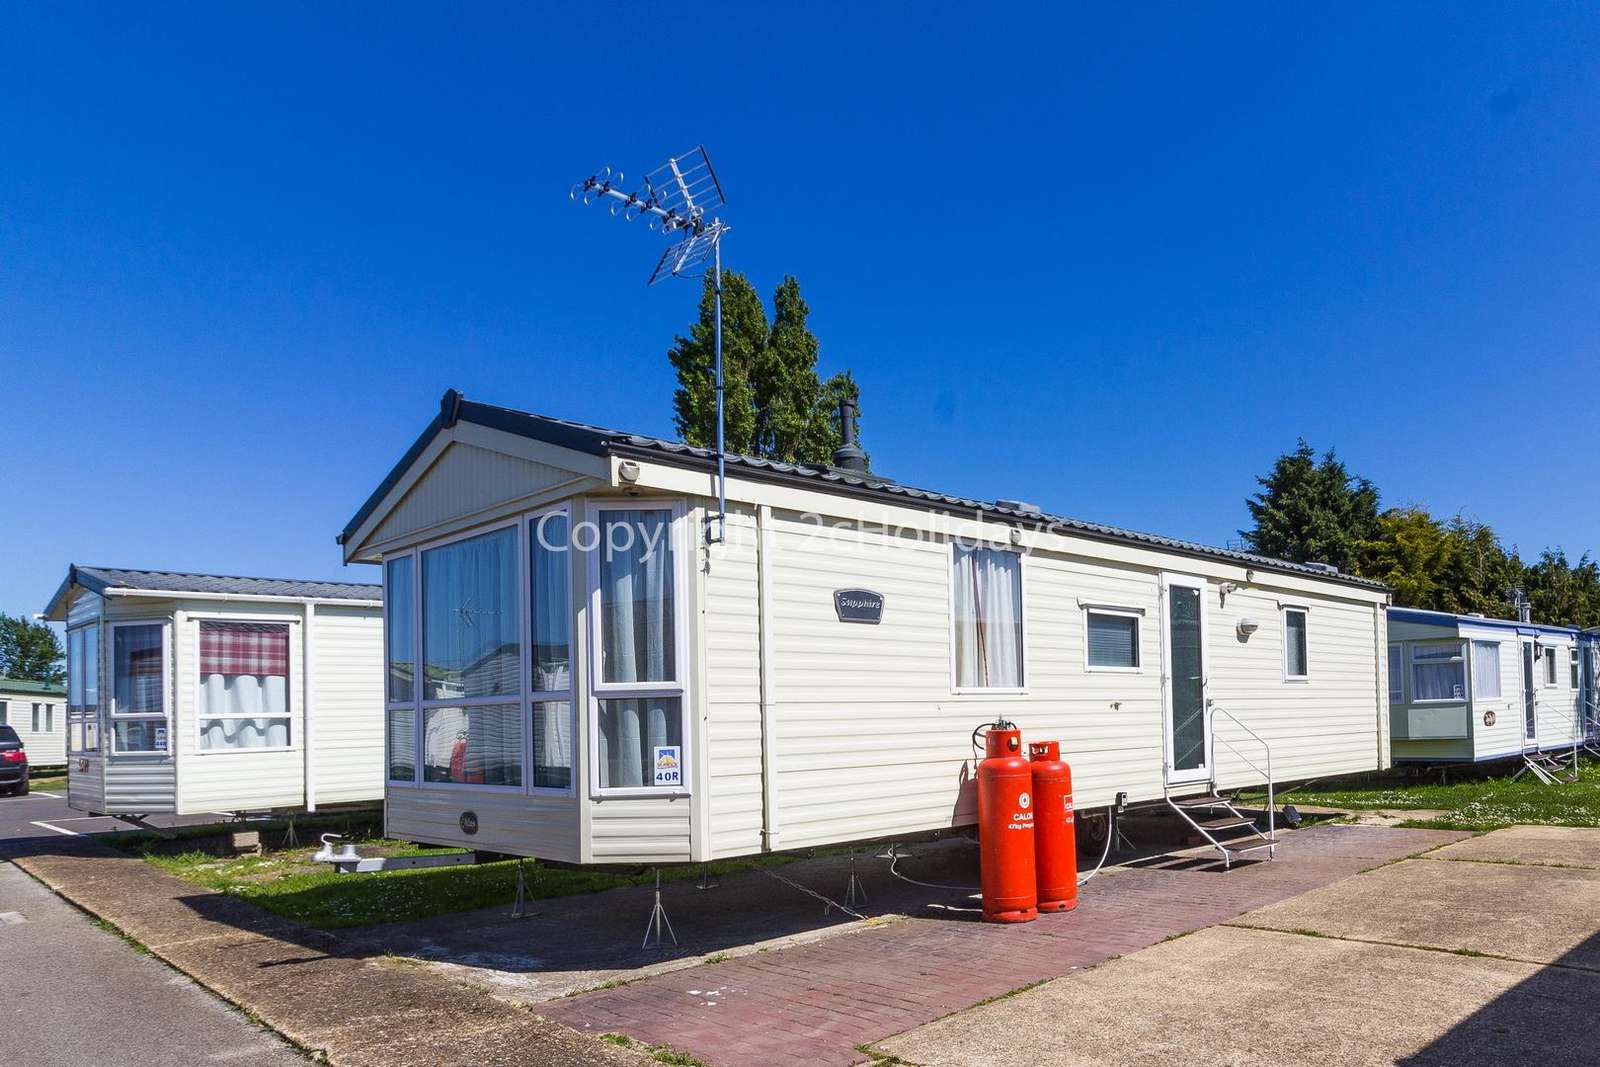 A lovely caravan with a homely feel. - property